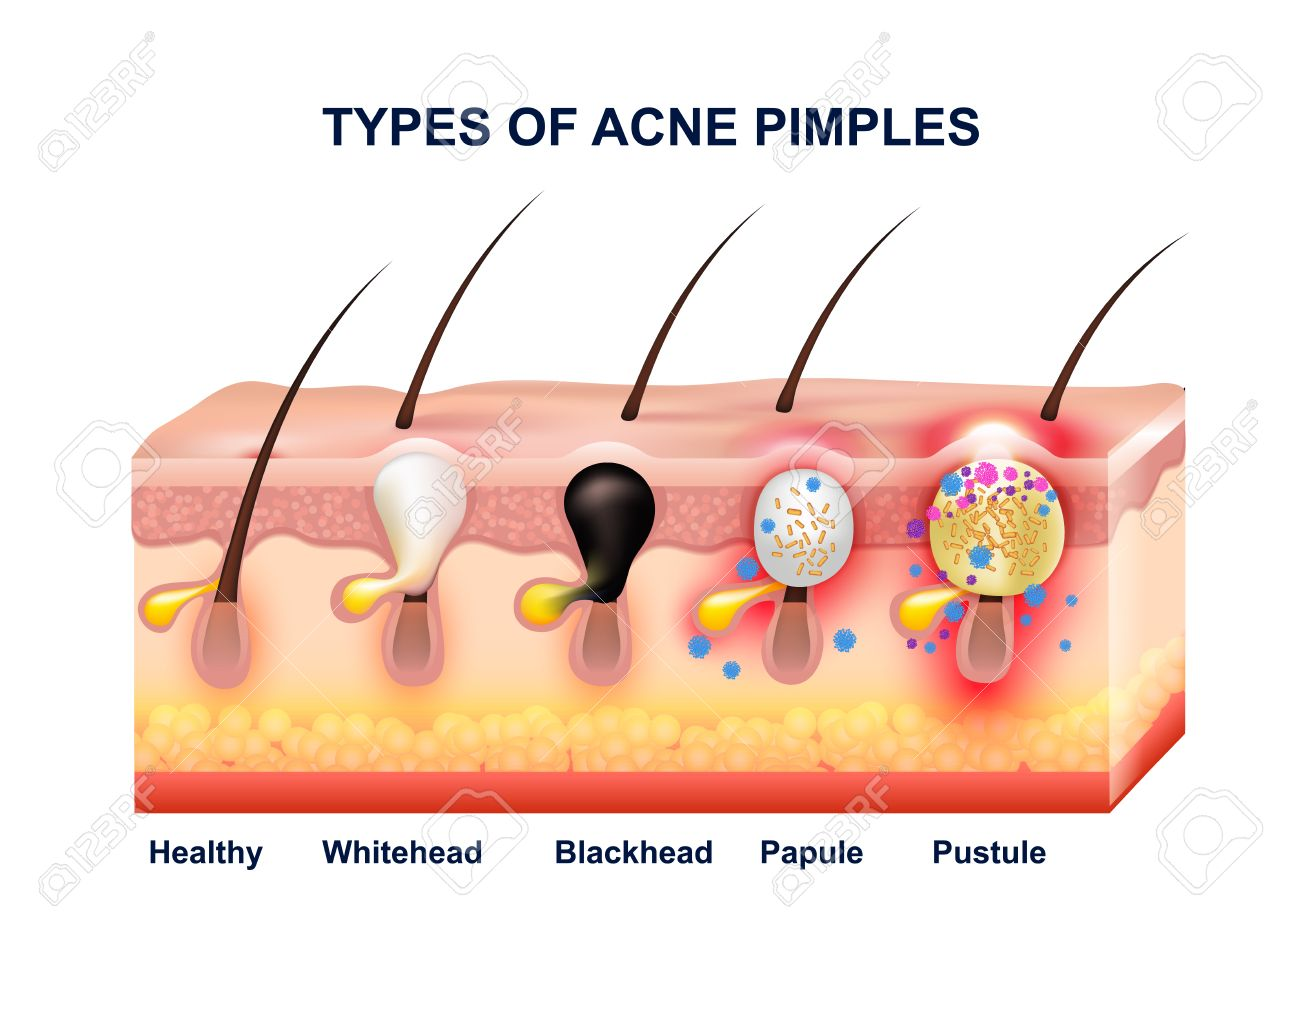 Colored Skin Acne Anatomy Composition With Types Of Acne Pimples ...